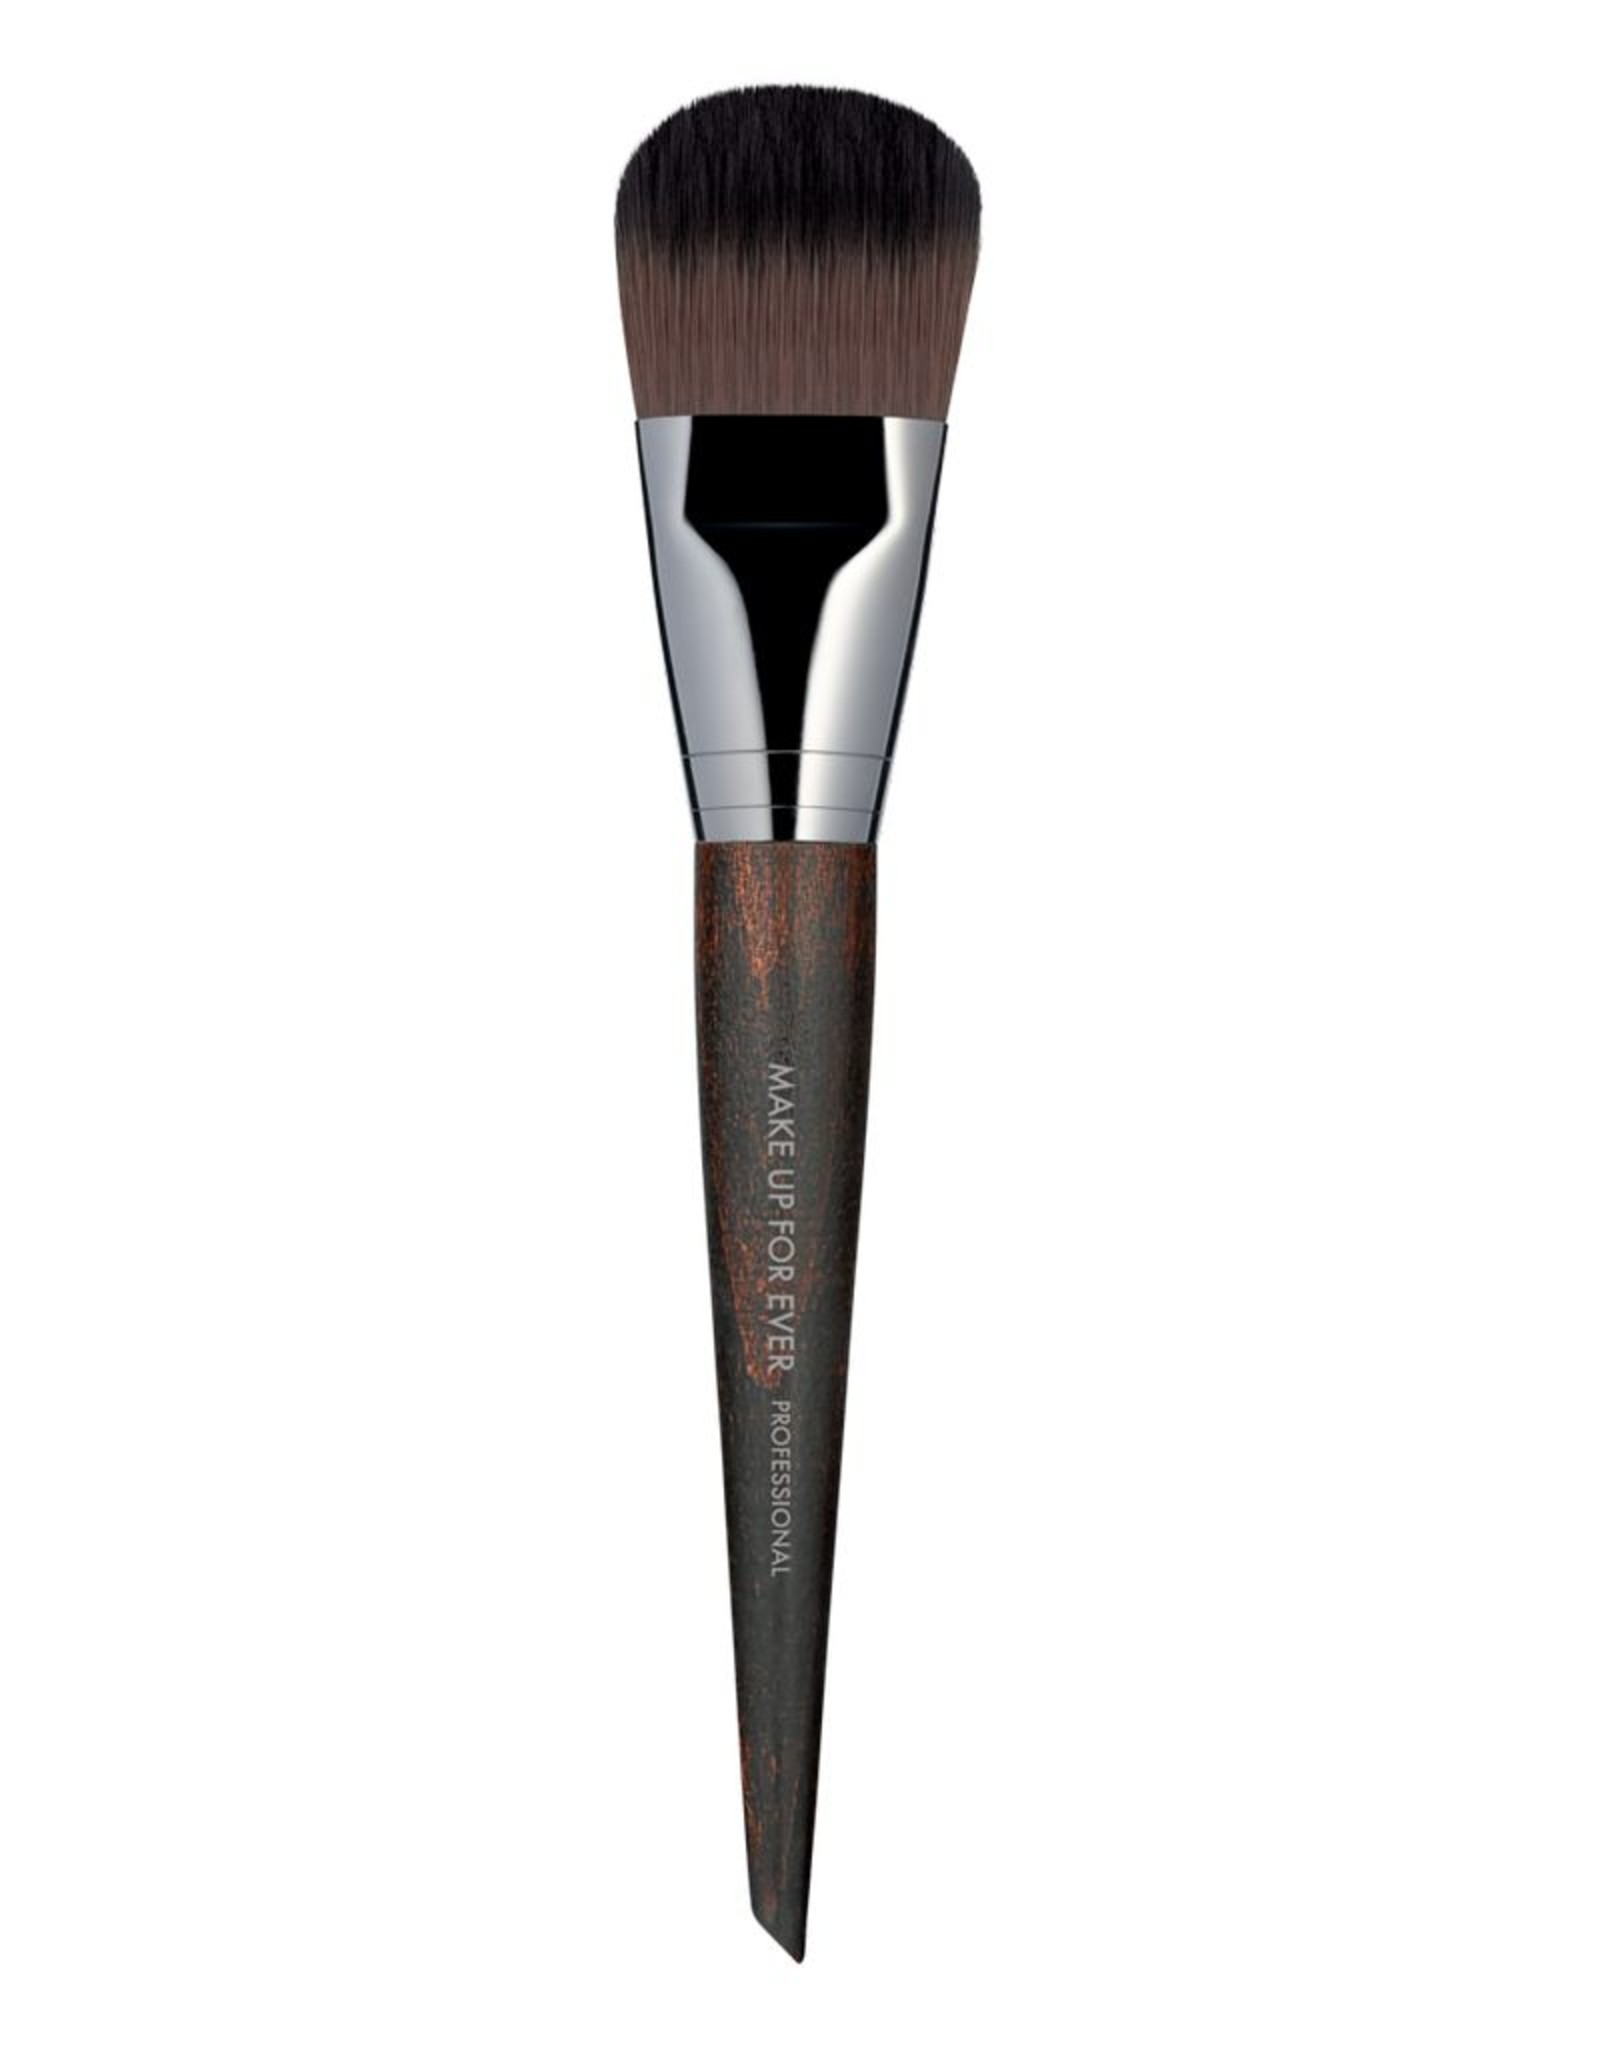 MUFE FOUNDATION BRUSH - LARGE   - SALES REFS 59108